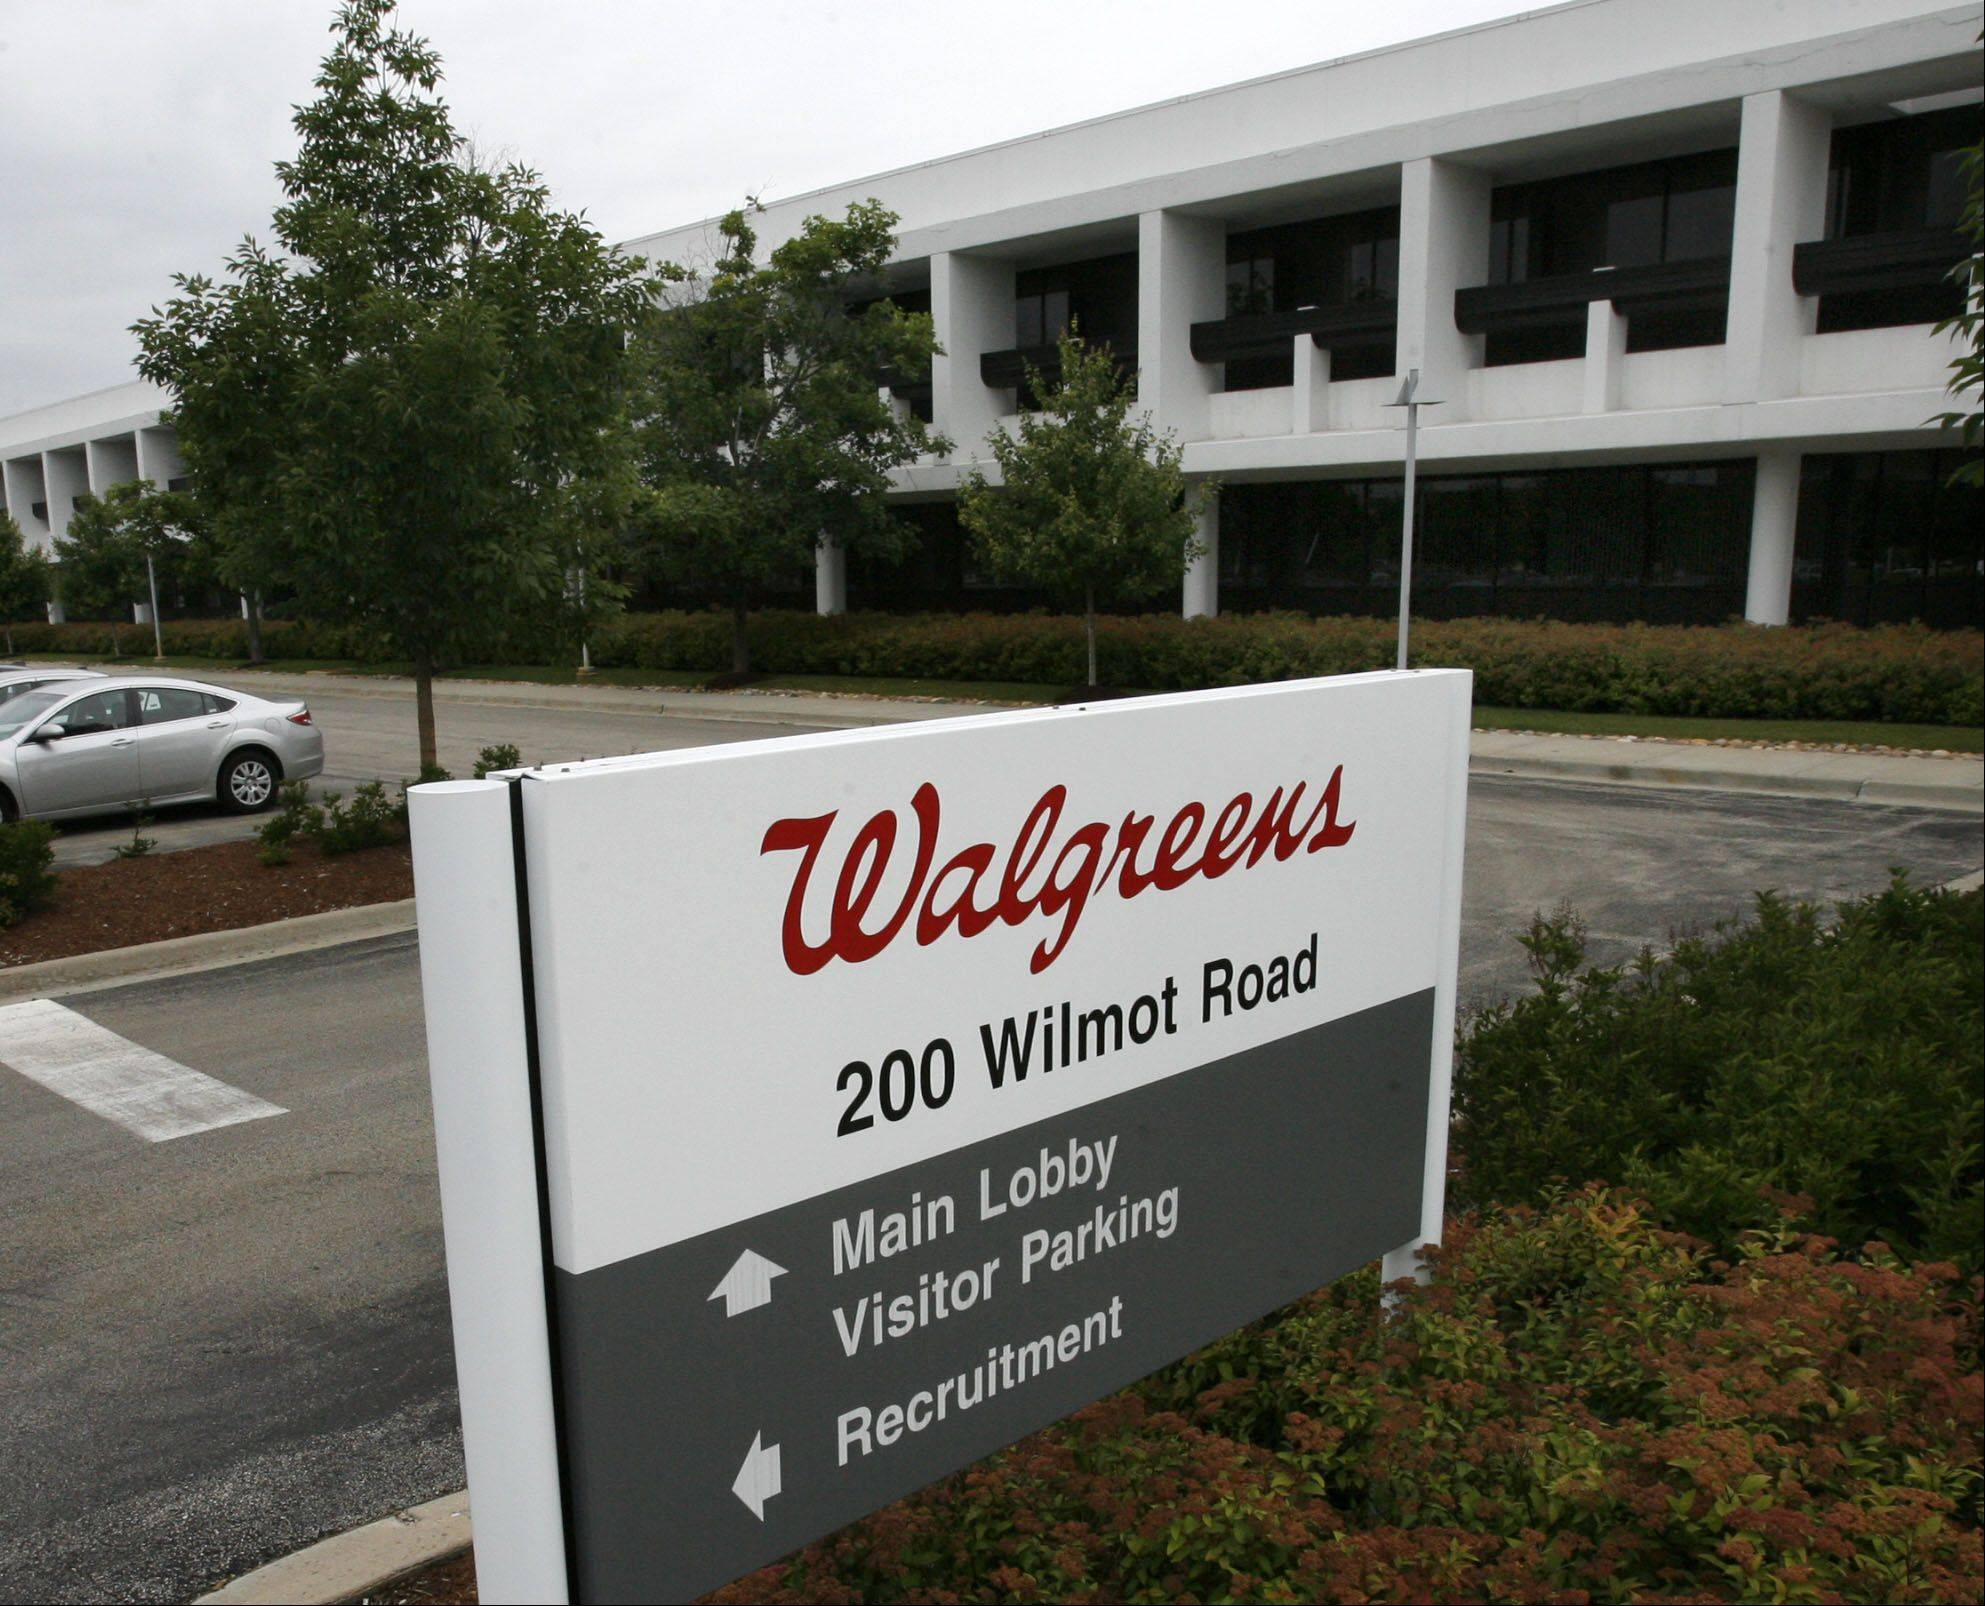 Walgreen Co., the biggest U.S. drugstore chain, will move its workers into a private health insurance exchange to buy company-subsidized coverage, the latest sign of how the debate over Obamacare is accelerating a historic shift in corporate health-care coverage.